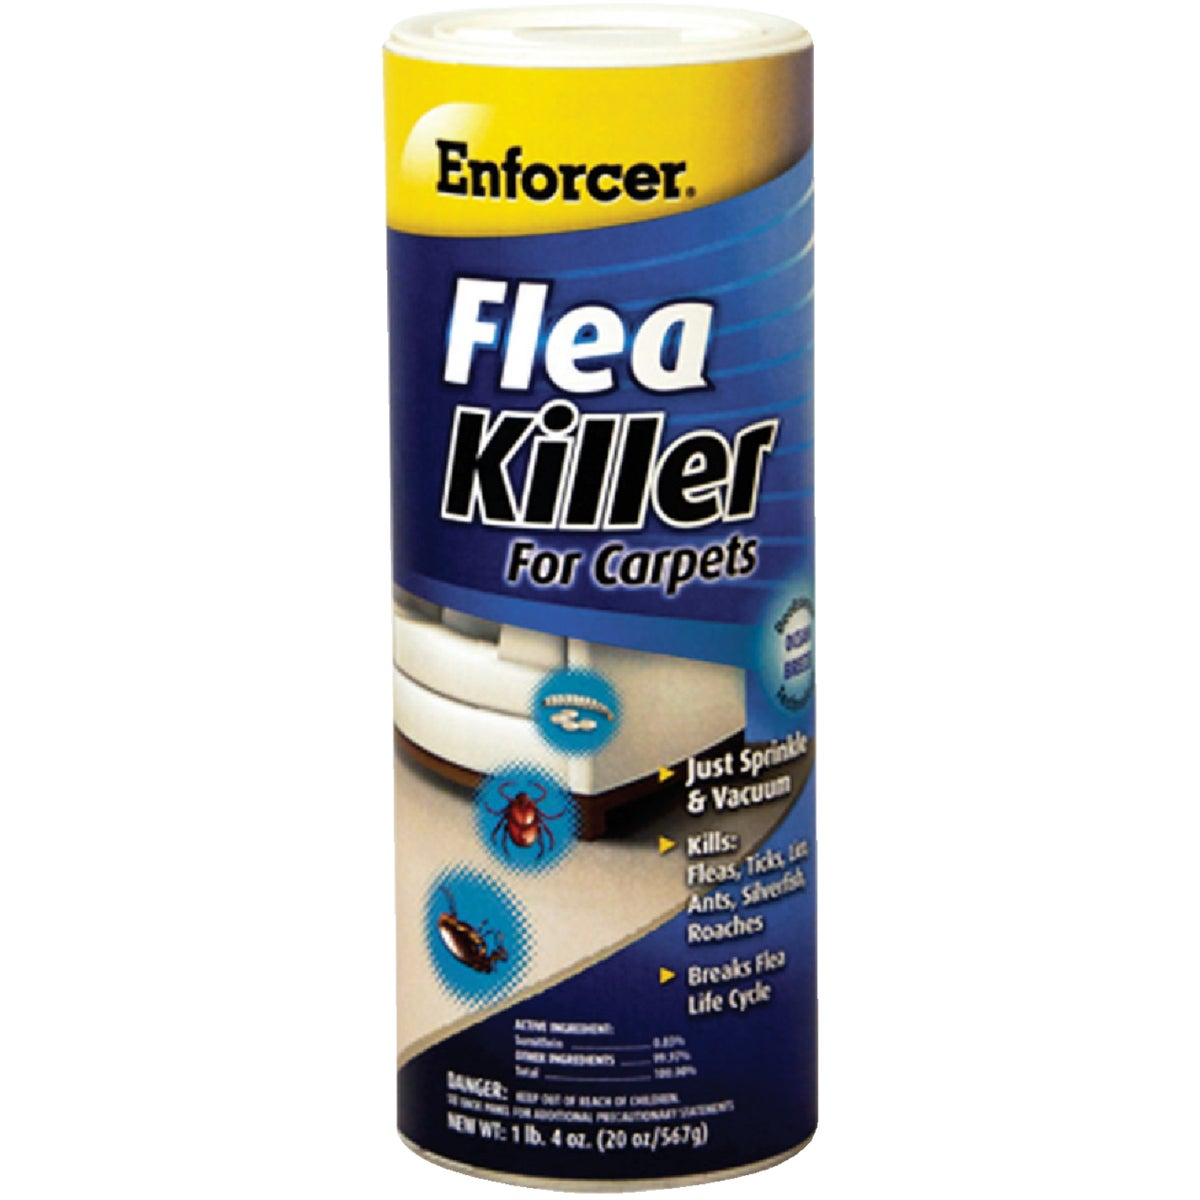 20OZ CARPET FLEA KILLER - EFKOB203 by Zep Enforcer Inc